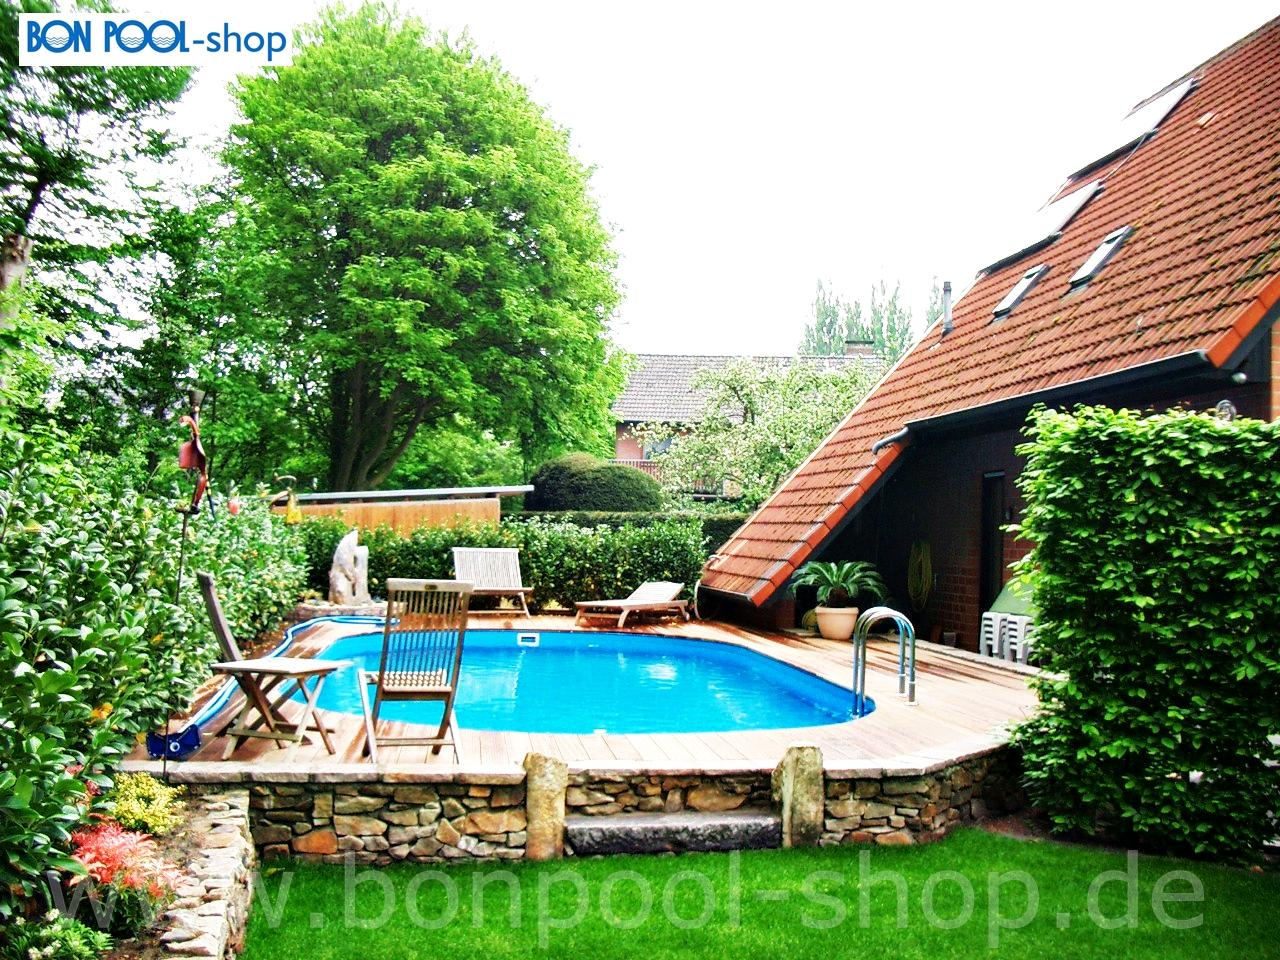 Pool Rund 150 Tief Ovalbecken Set 630 X 360 150 Tief Ovalpool Bon Pool